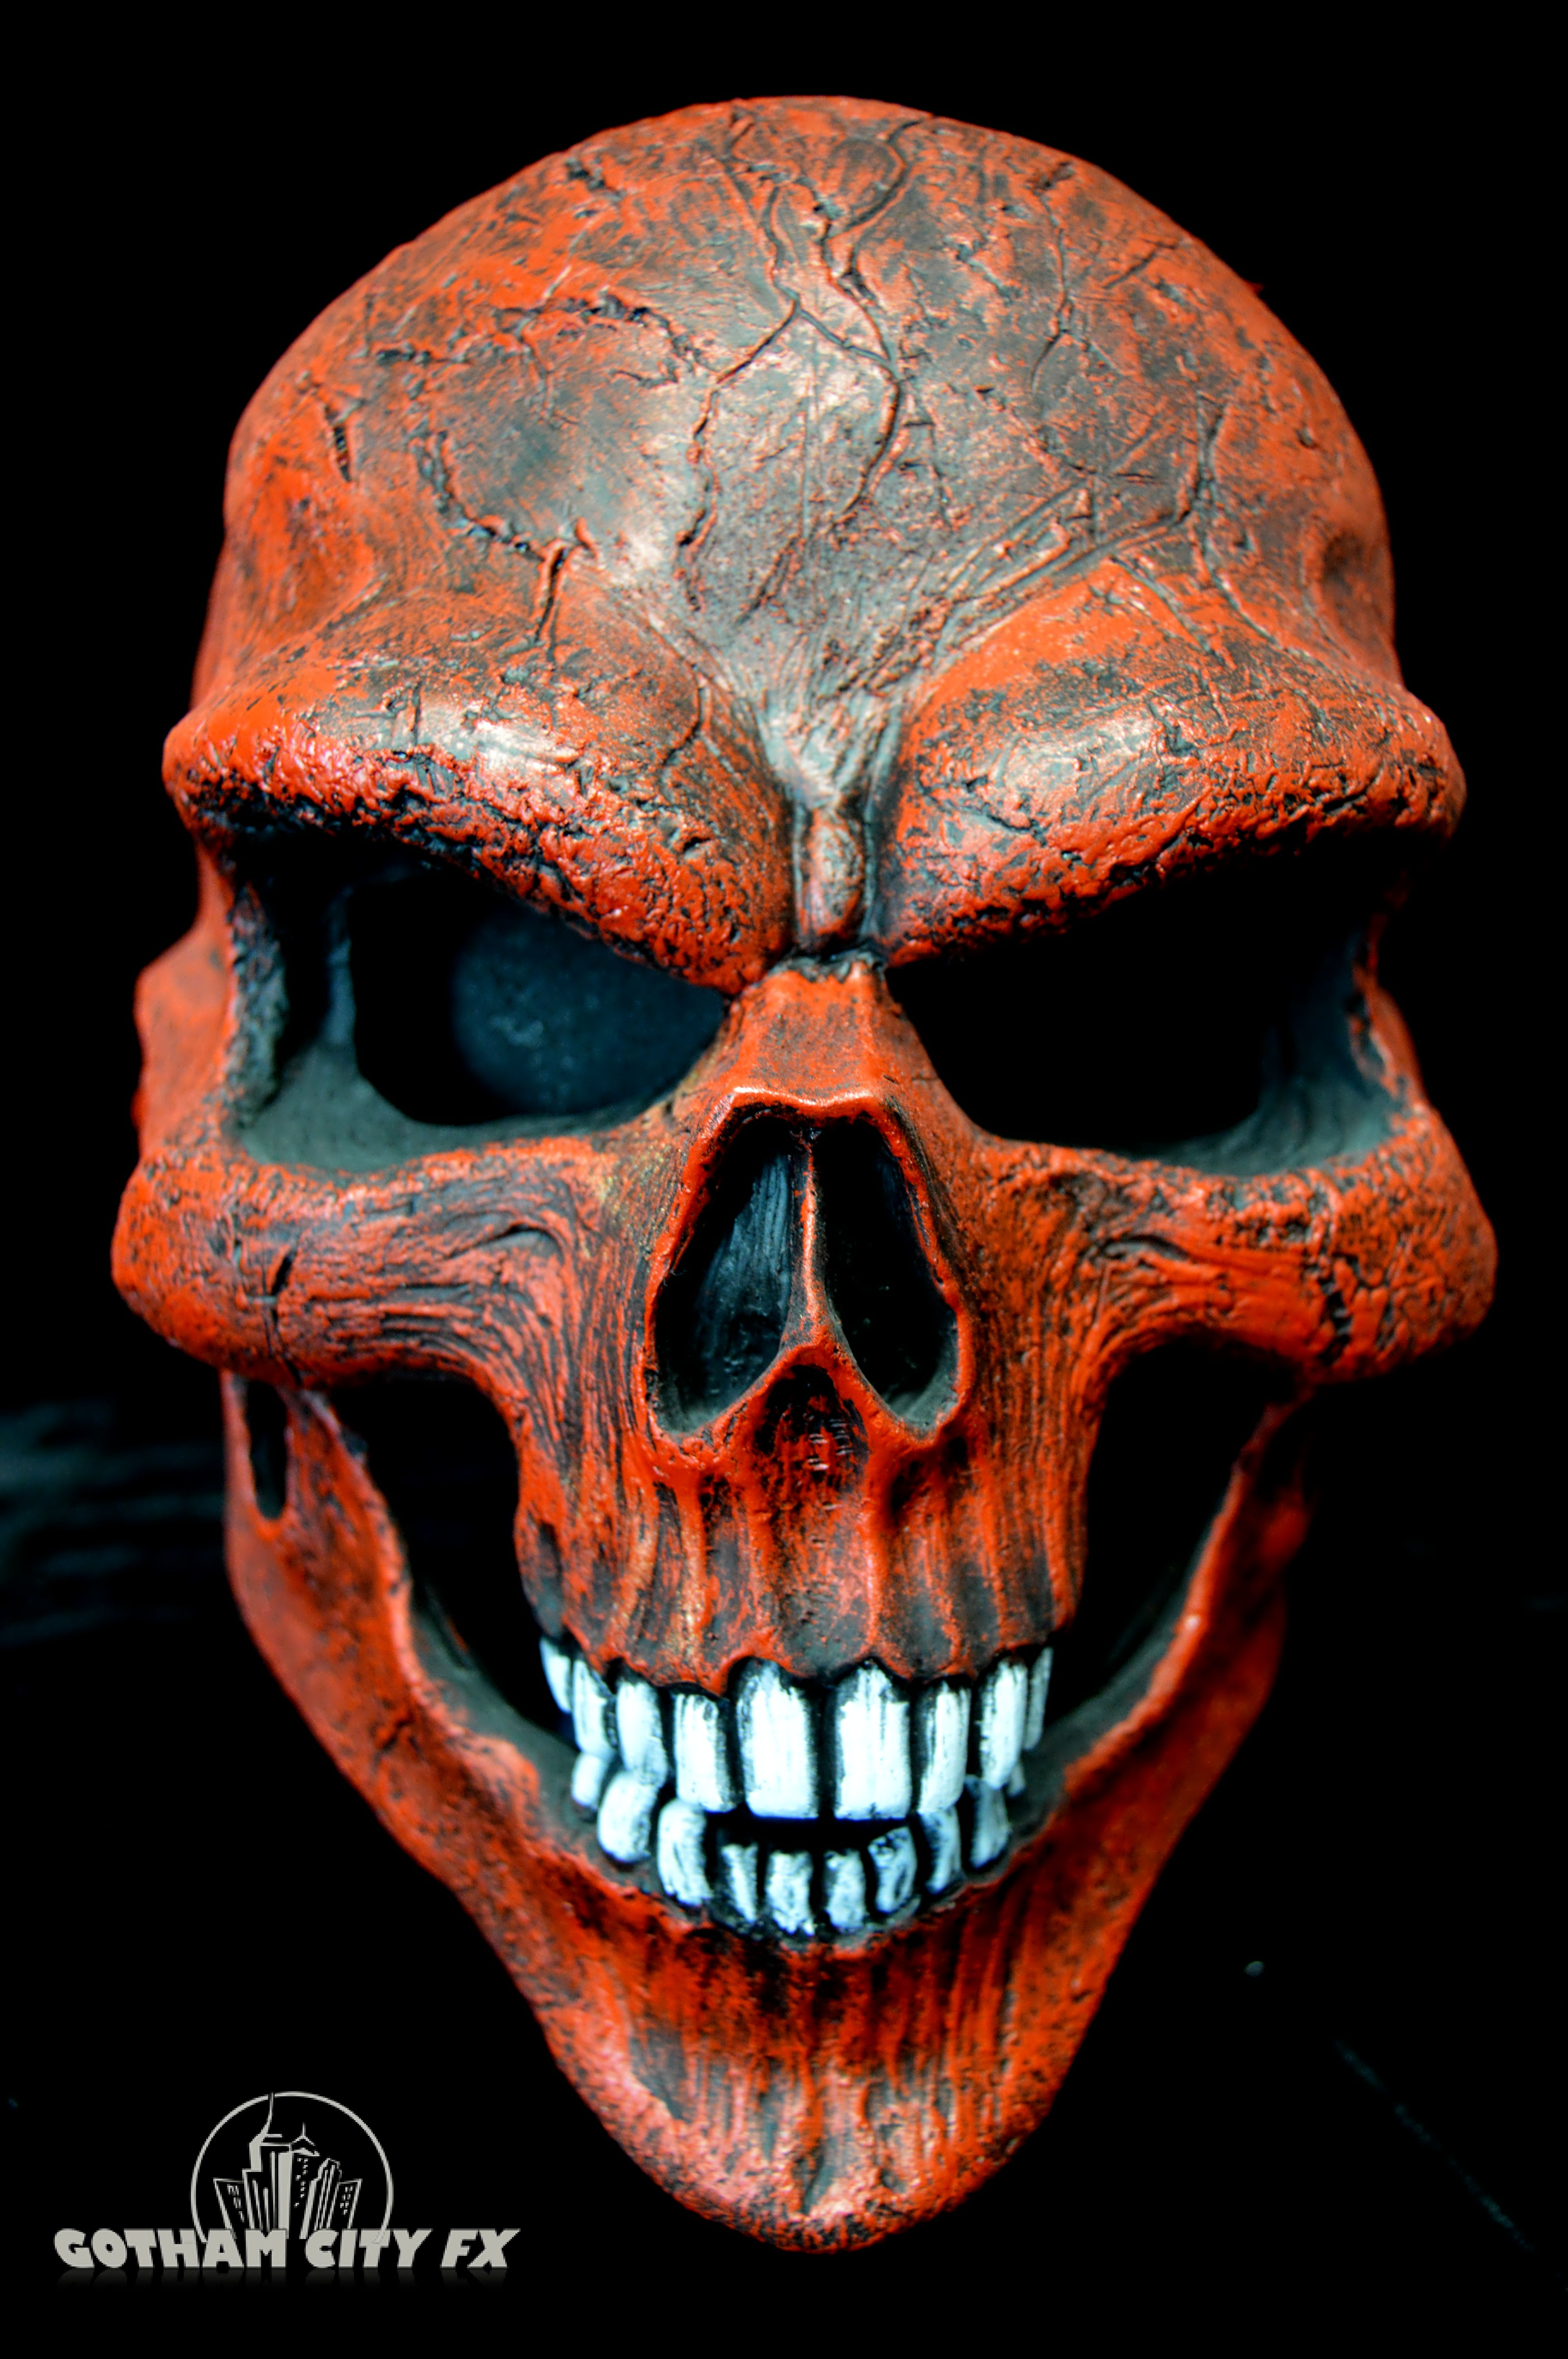 Red Ghost Rider Skull Mask · Gotham City FX · Online Store Powered ...